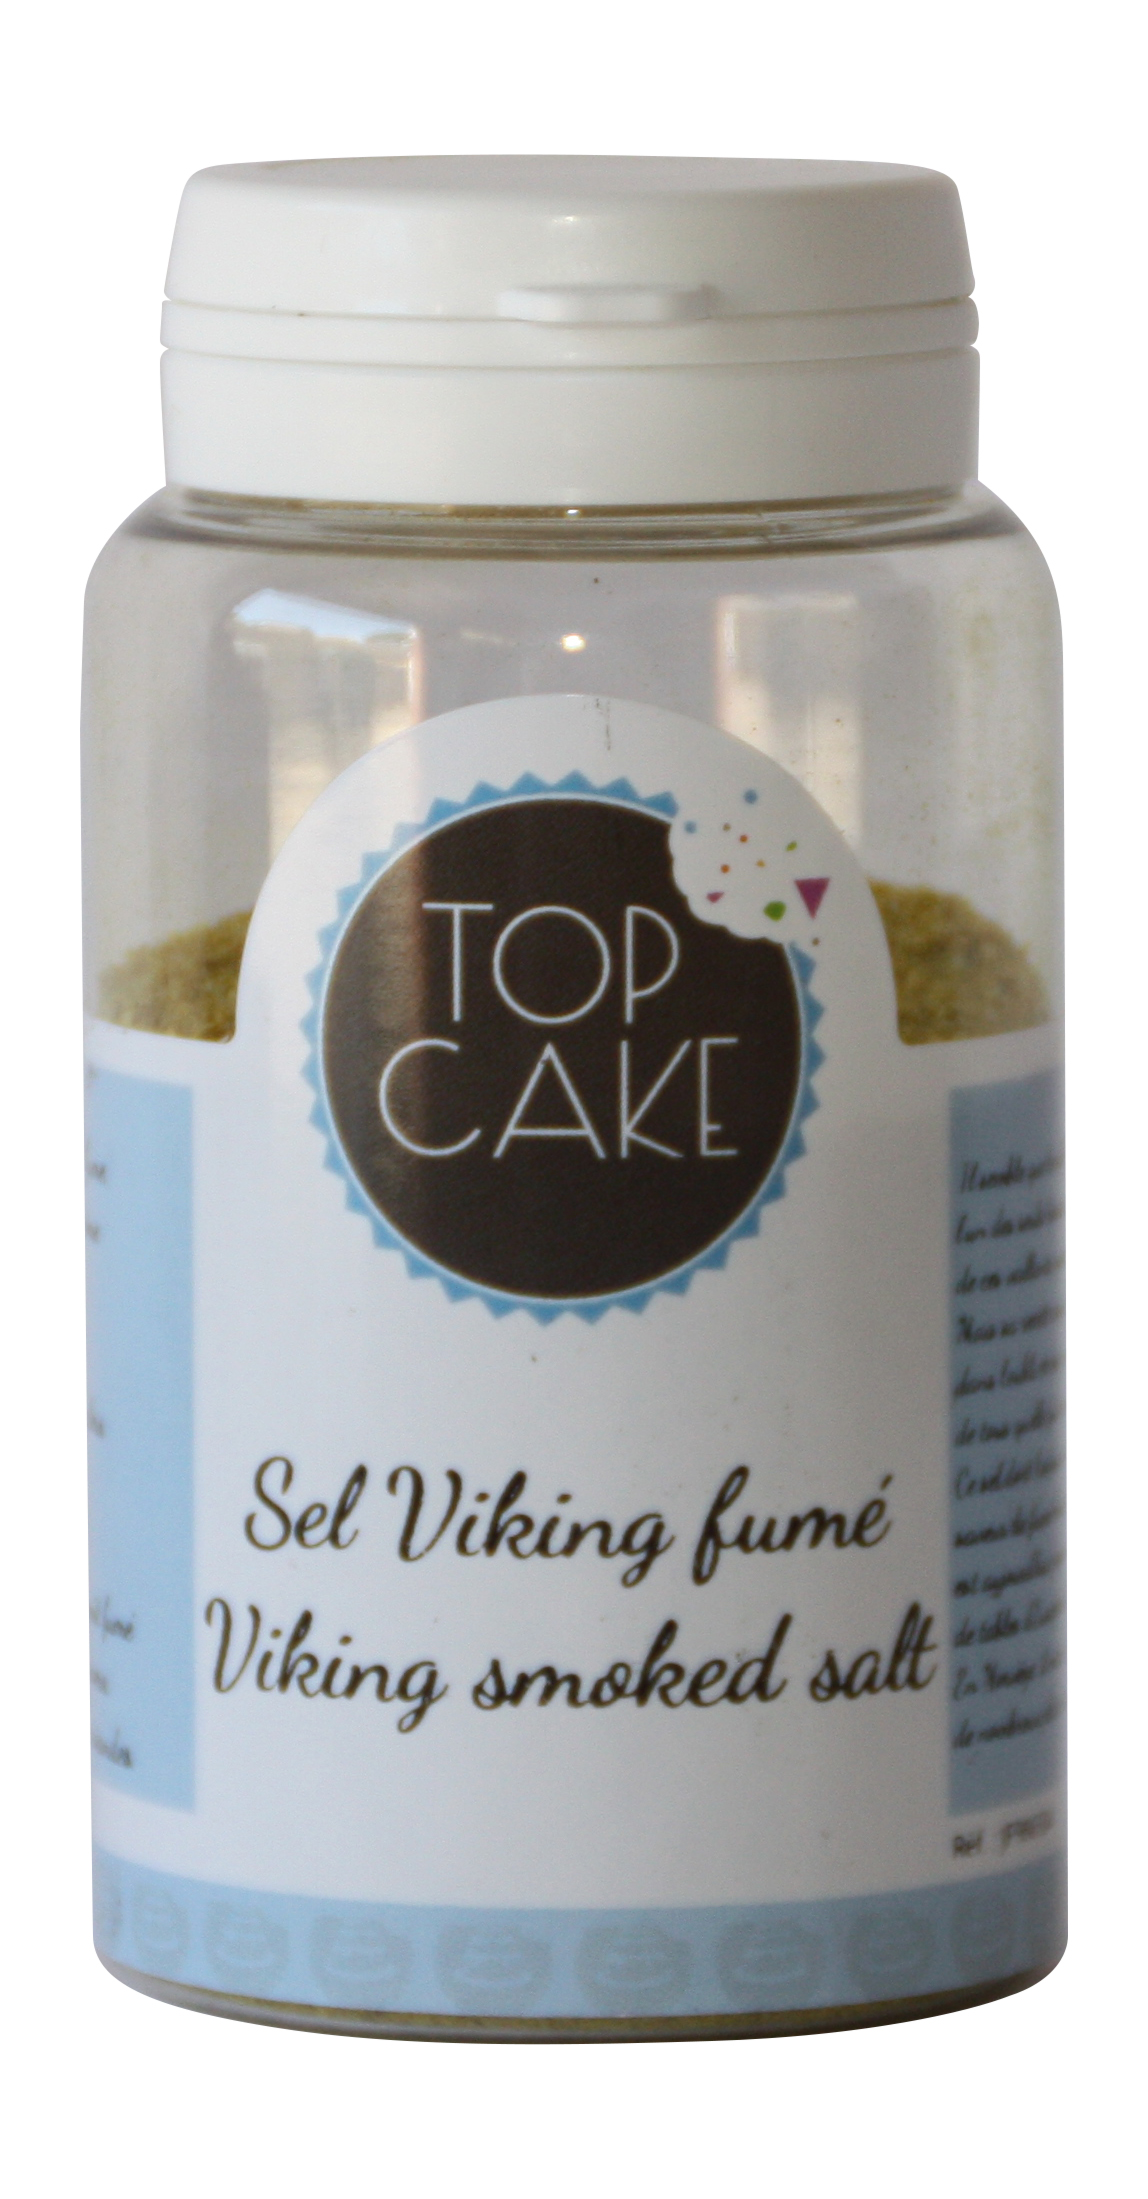 Smoked viking salt 100g - TopCake